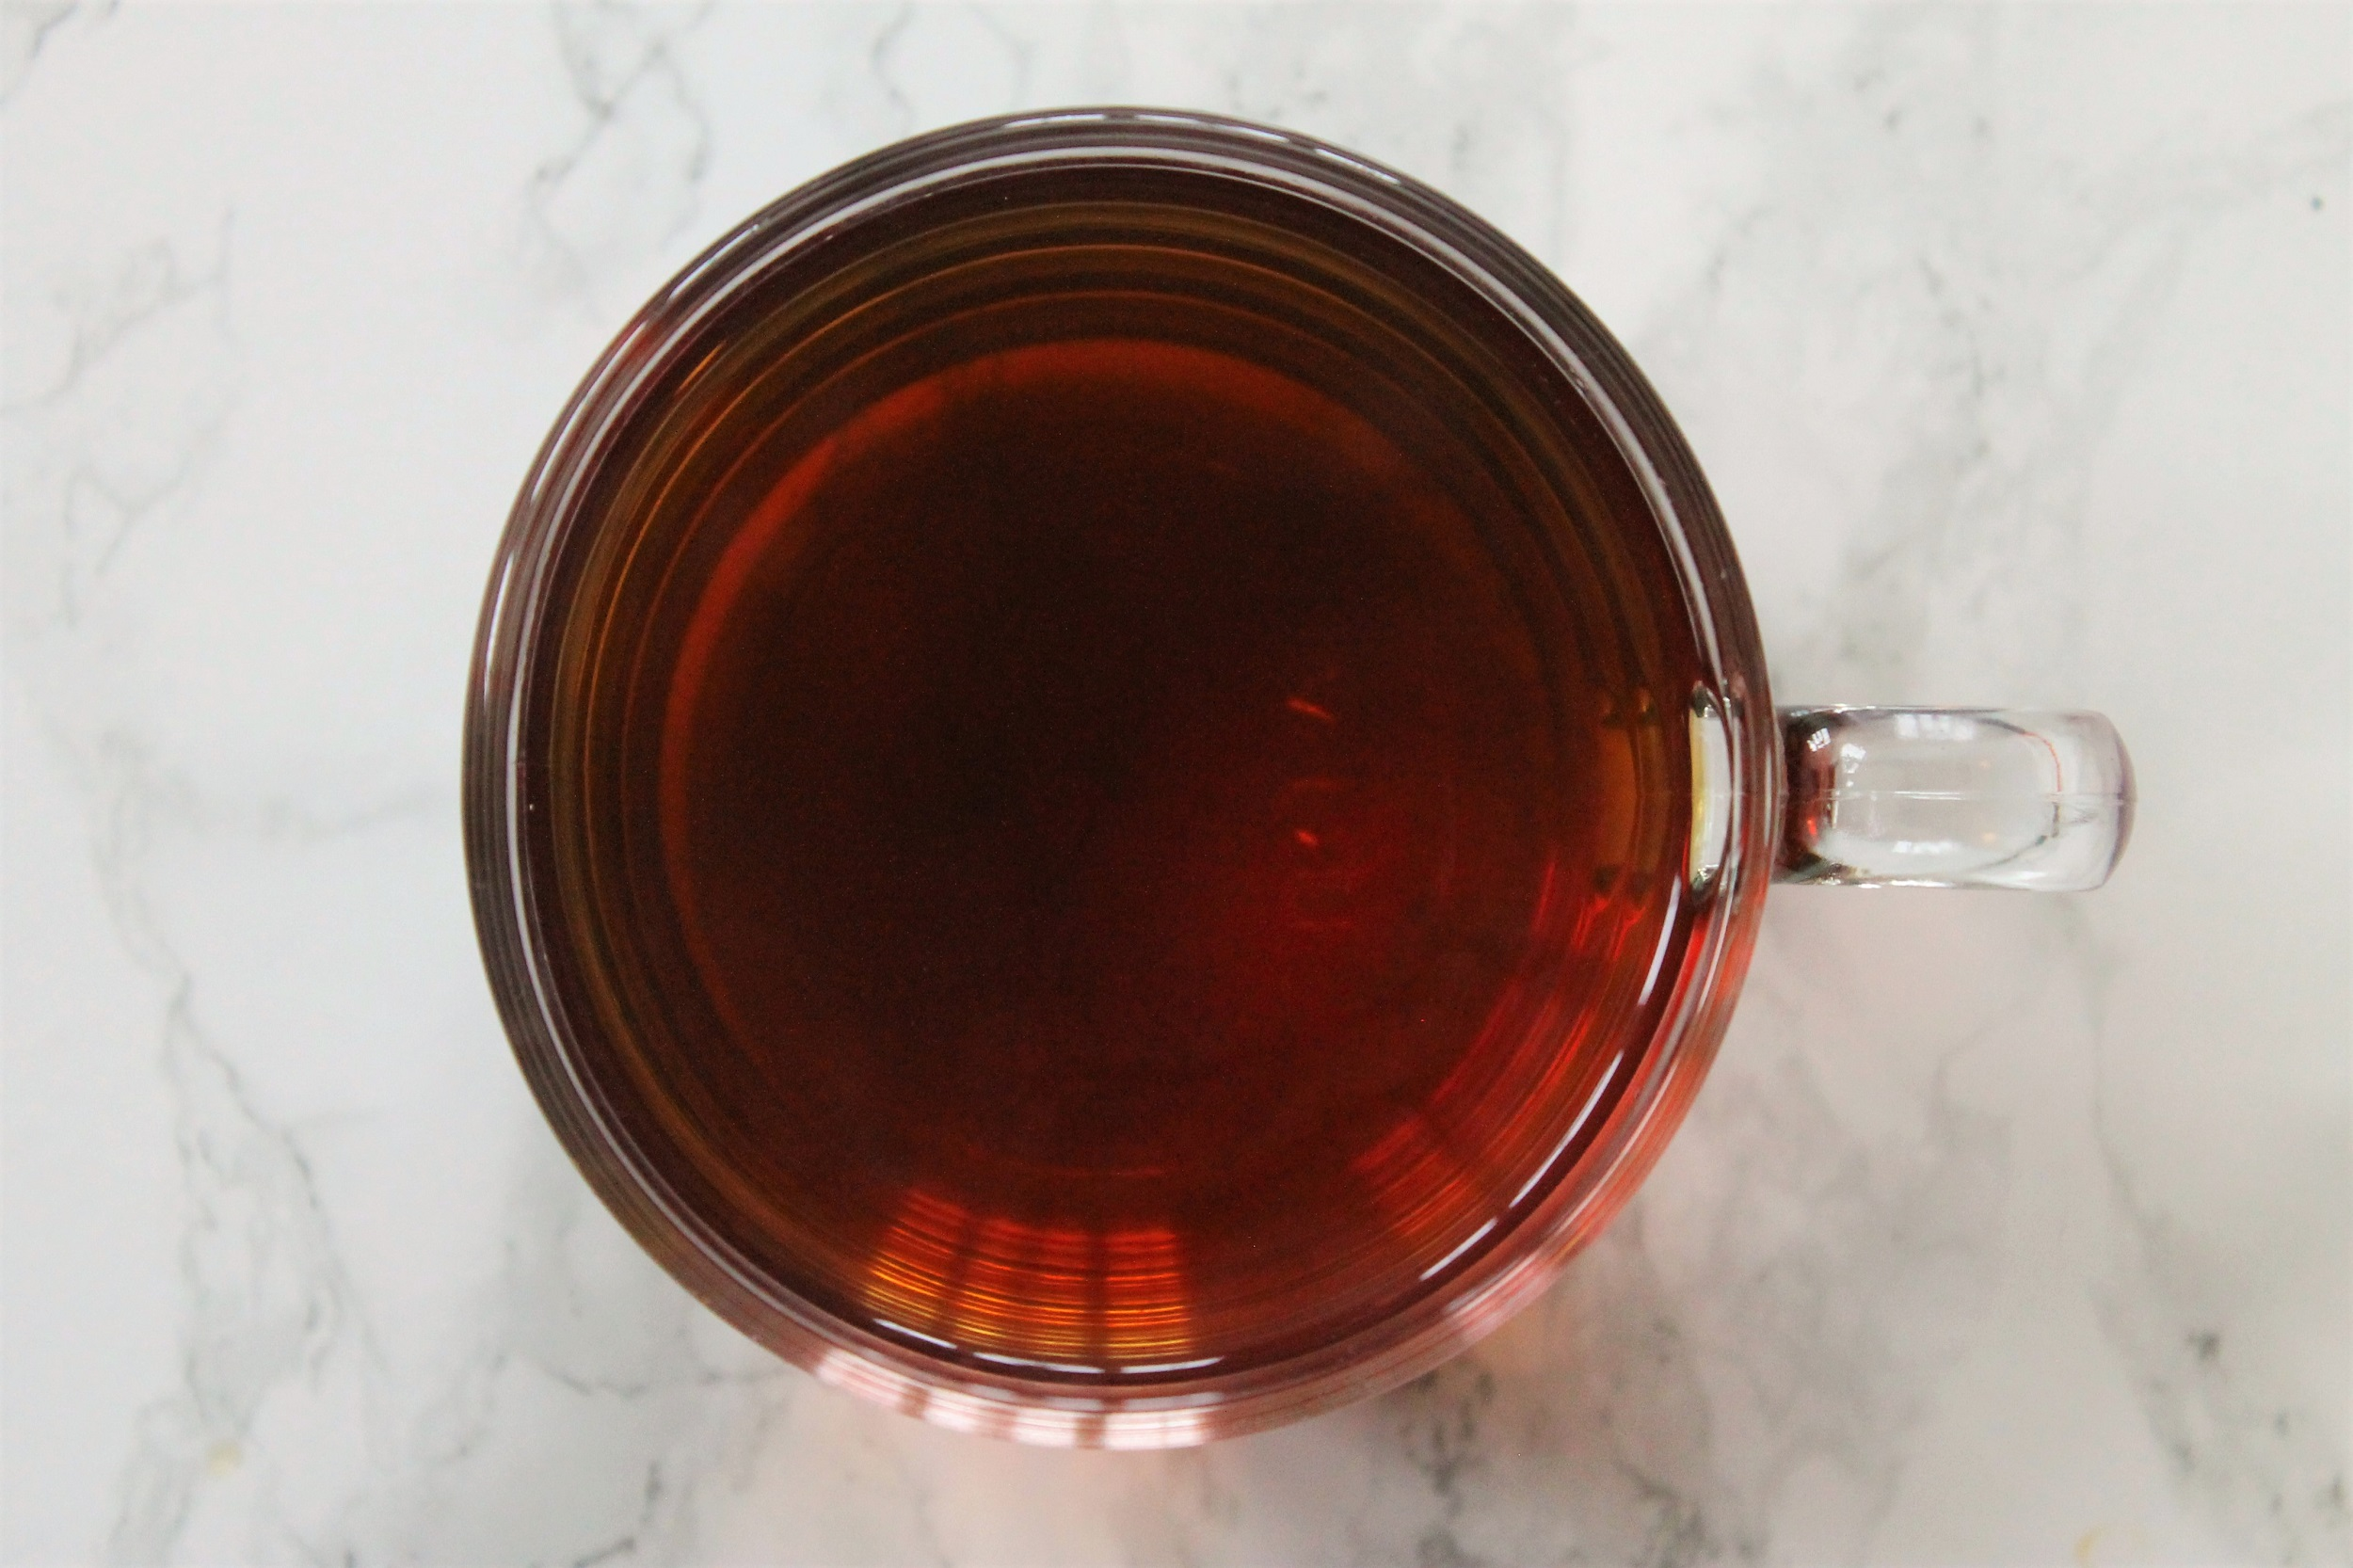 boh cameronian gold blend in teacup